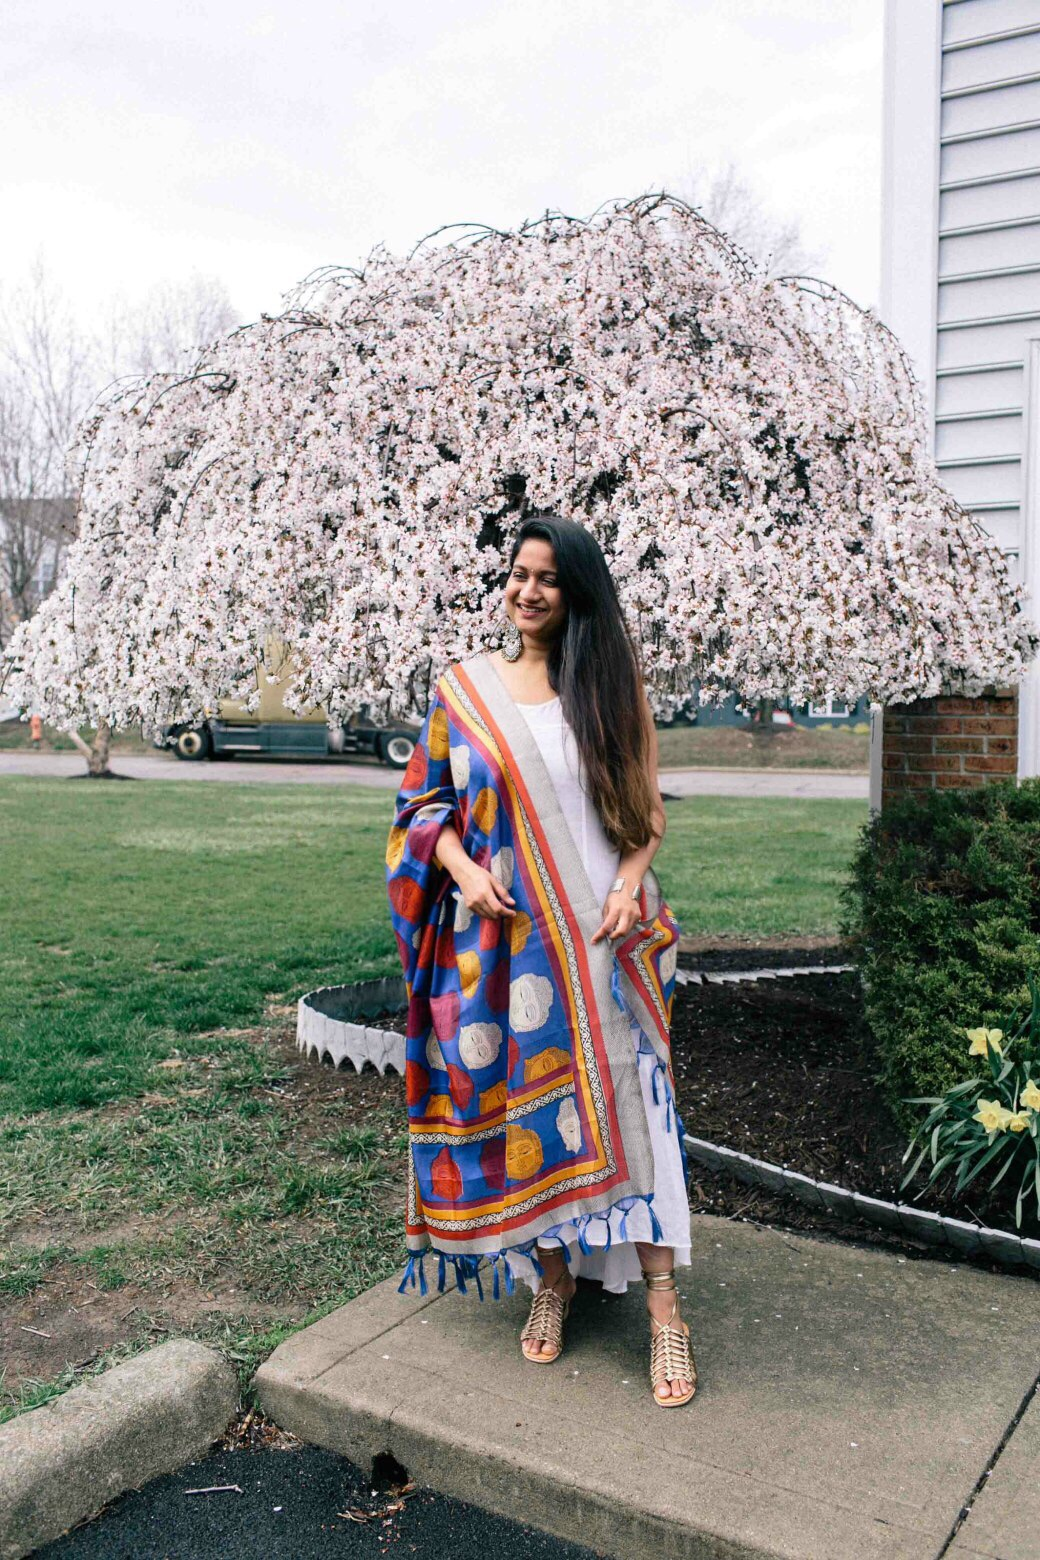 Modest Fashion and Lifestyle blog dreaming loud sharing spring 2018 into western style with anthropologie white maxi dress with varanga blue Bhagalpuri Dupatta - Indo-Western Spring Outfit featured by popular modest fashion blogger, Dreaming Loud